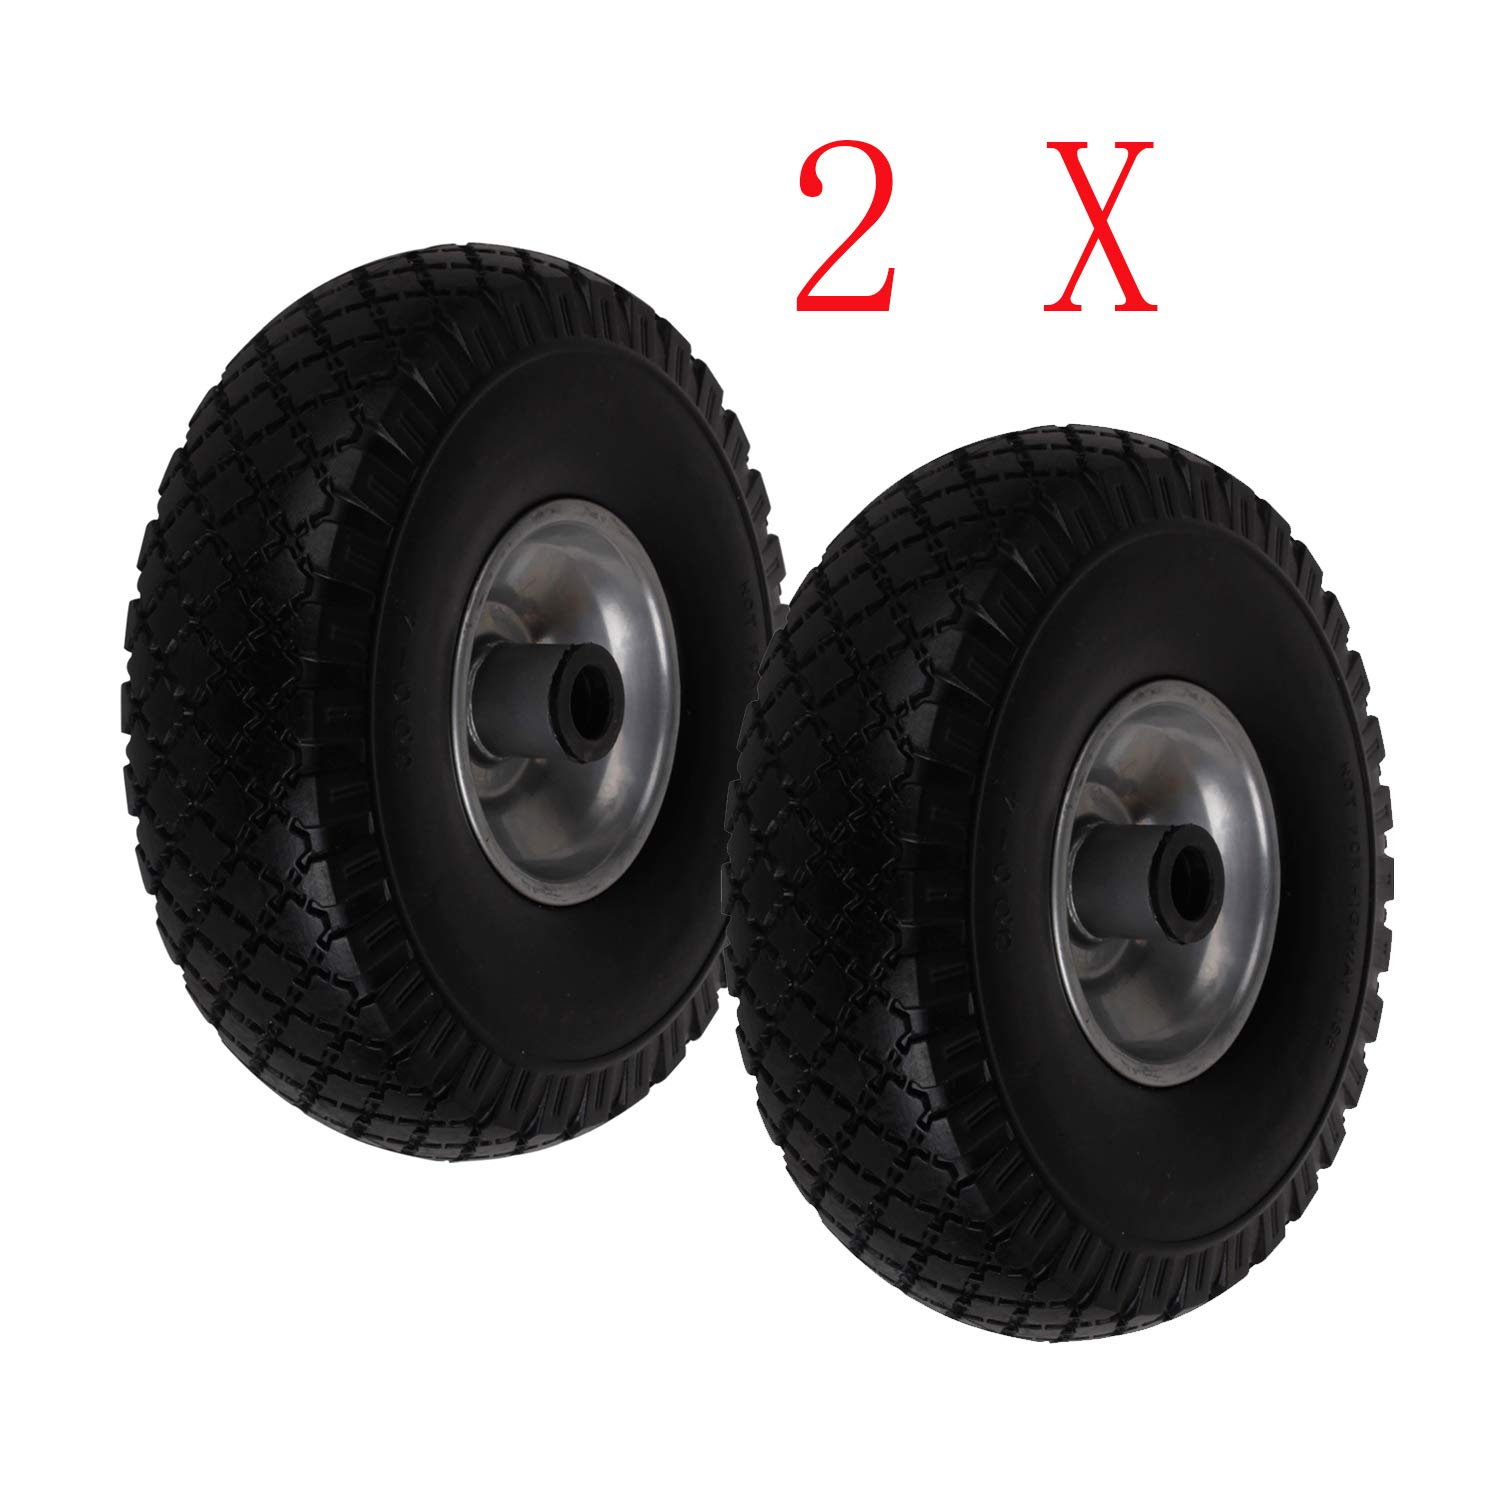 Miafamily Sack Truck Hand Trolley Cart Wheelbarrow Solid Rubber Wheel Tyre Tires PU Puncture Proof wheel Black 3.00-4/ 260 mm Max Load 100 kg